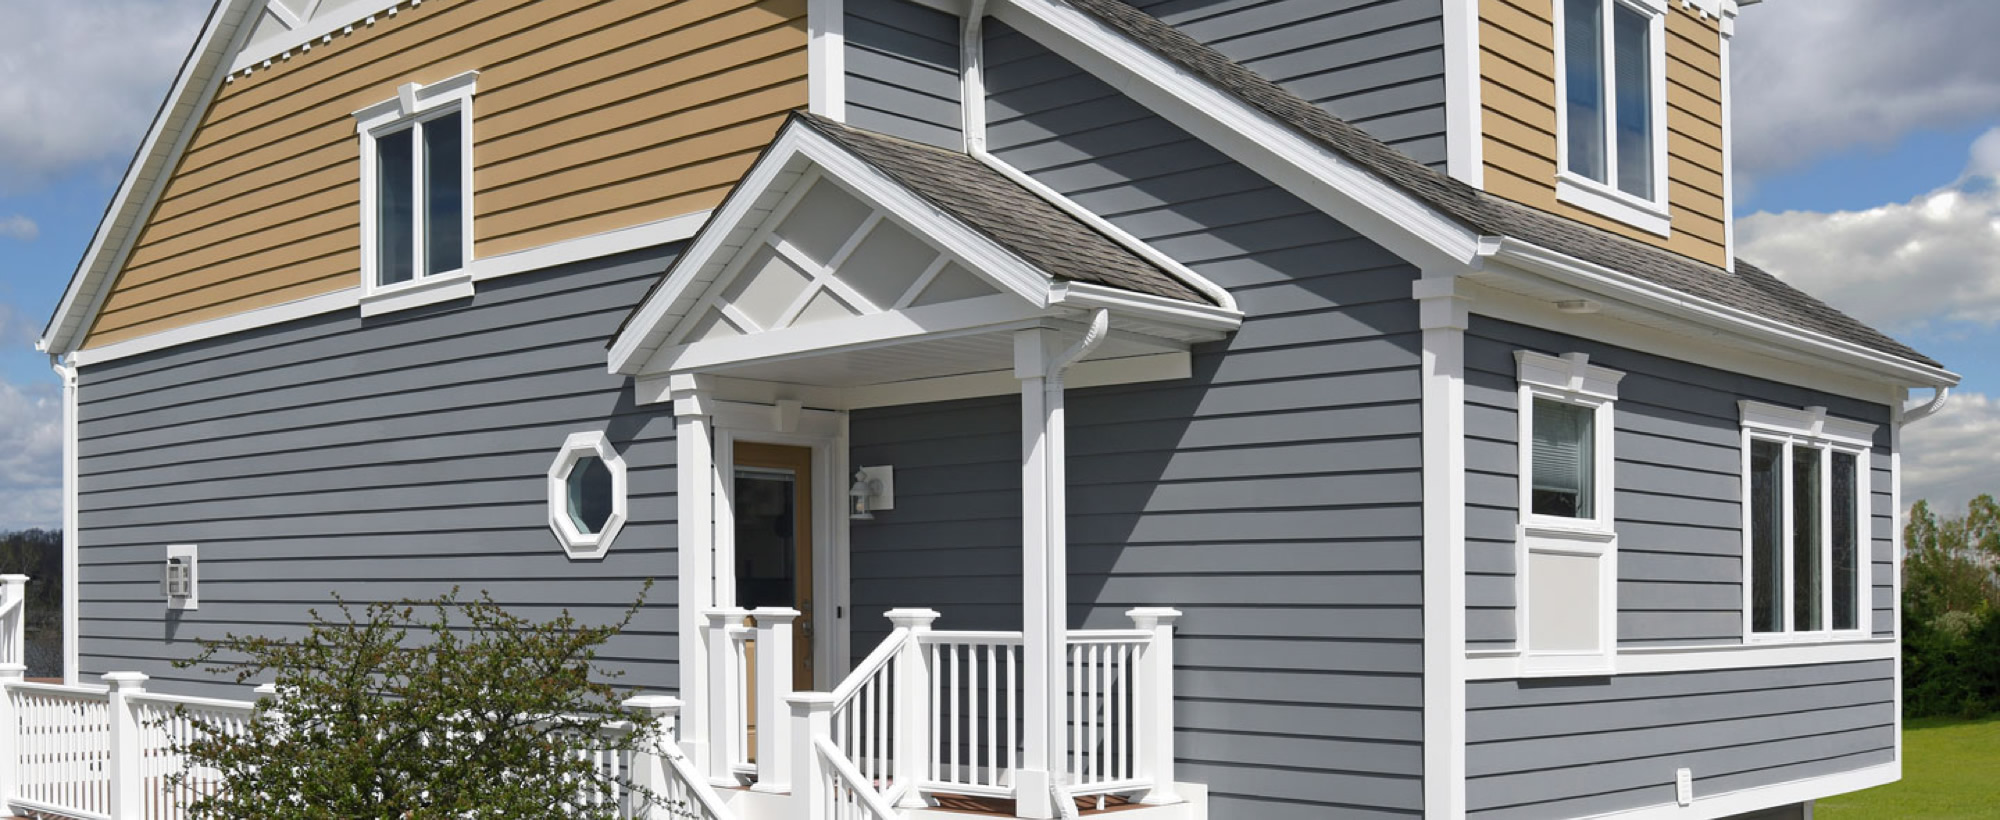 Exceptional Roofing Services In Merrimack, NH   Super Exterior | Local Roofing Company  Merrimack, NH   Super Exterior | Roof Leak Repair Merrimack, NH